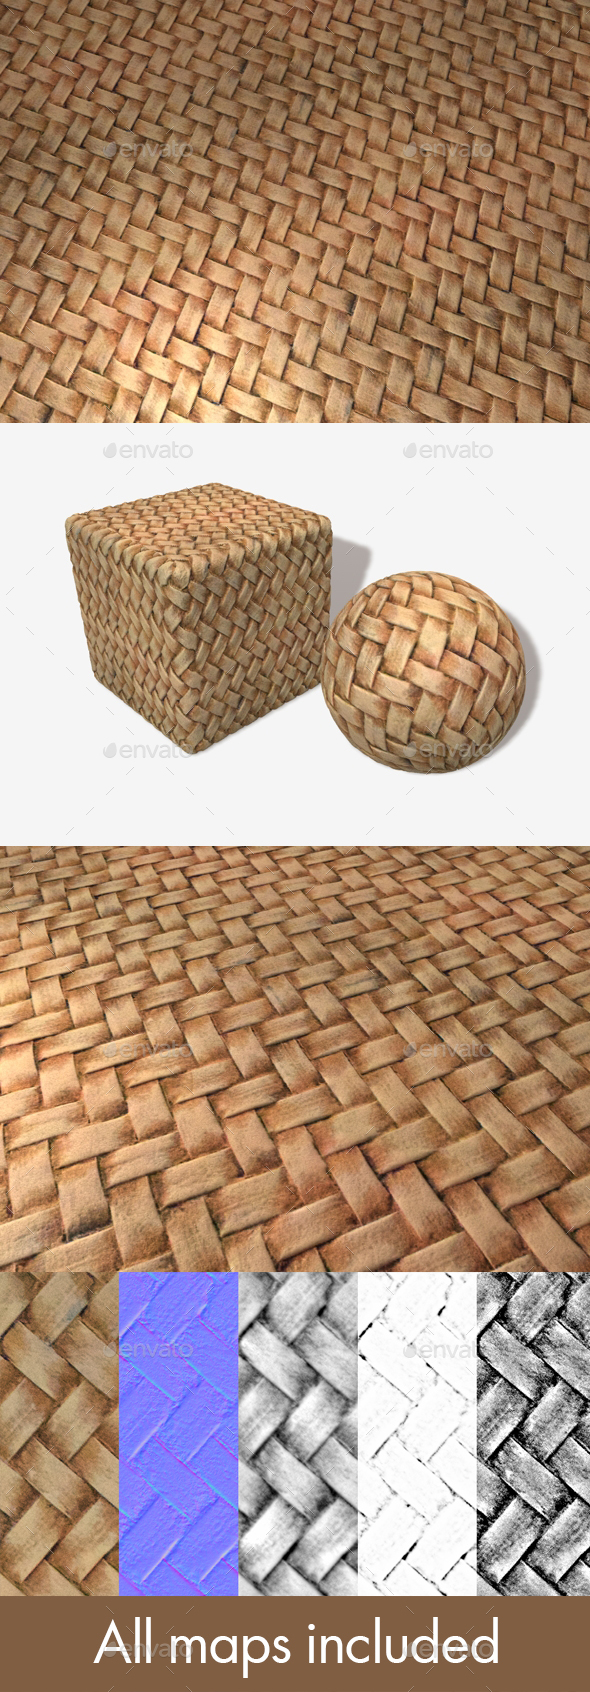 Artificial Wicker Seamless Texture - 3DOcean Item for Sale